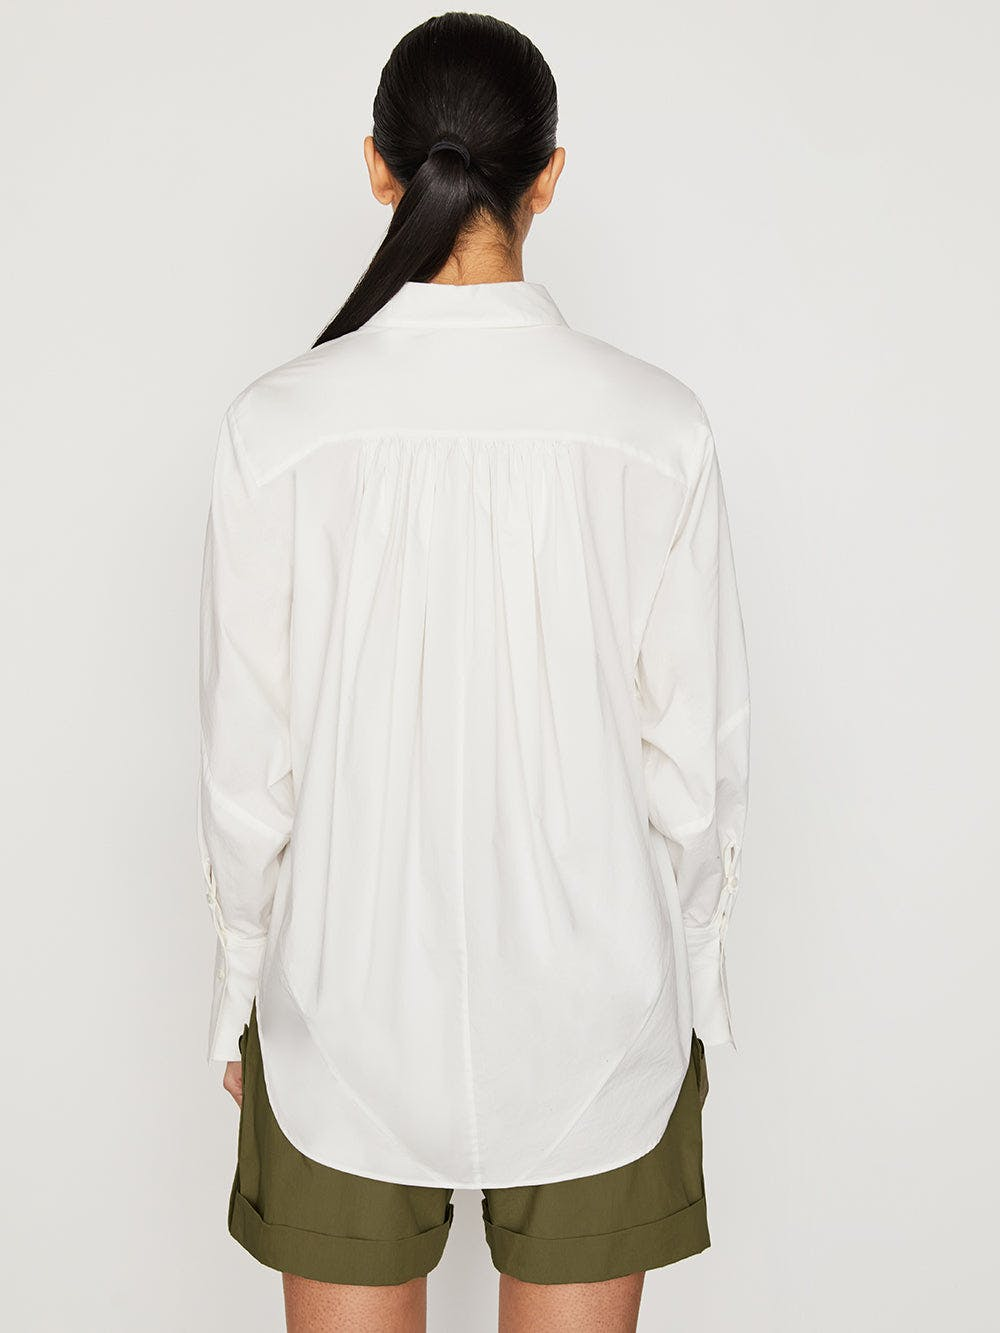 top back view